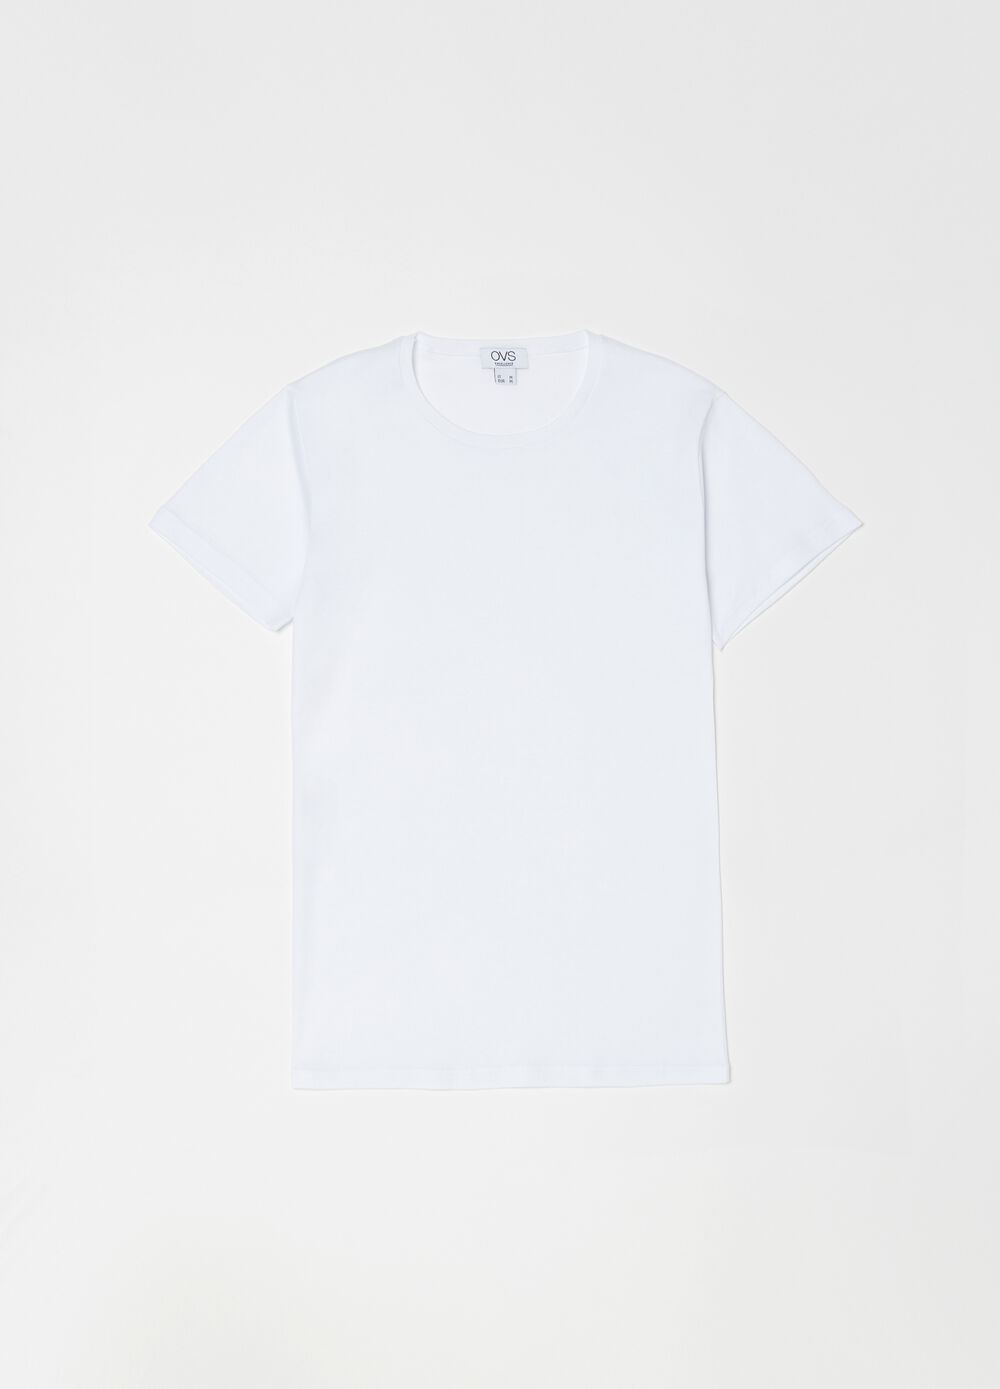 100% cotton undershirt with round neck